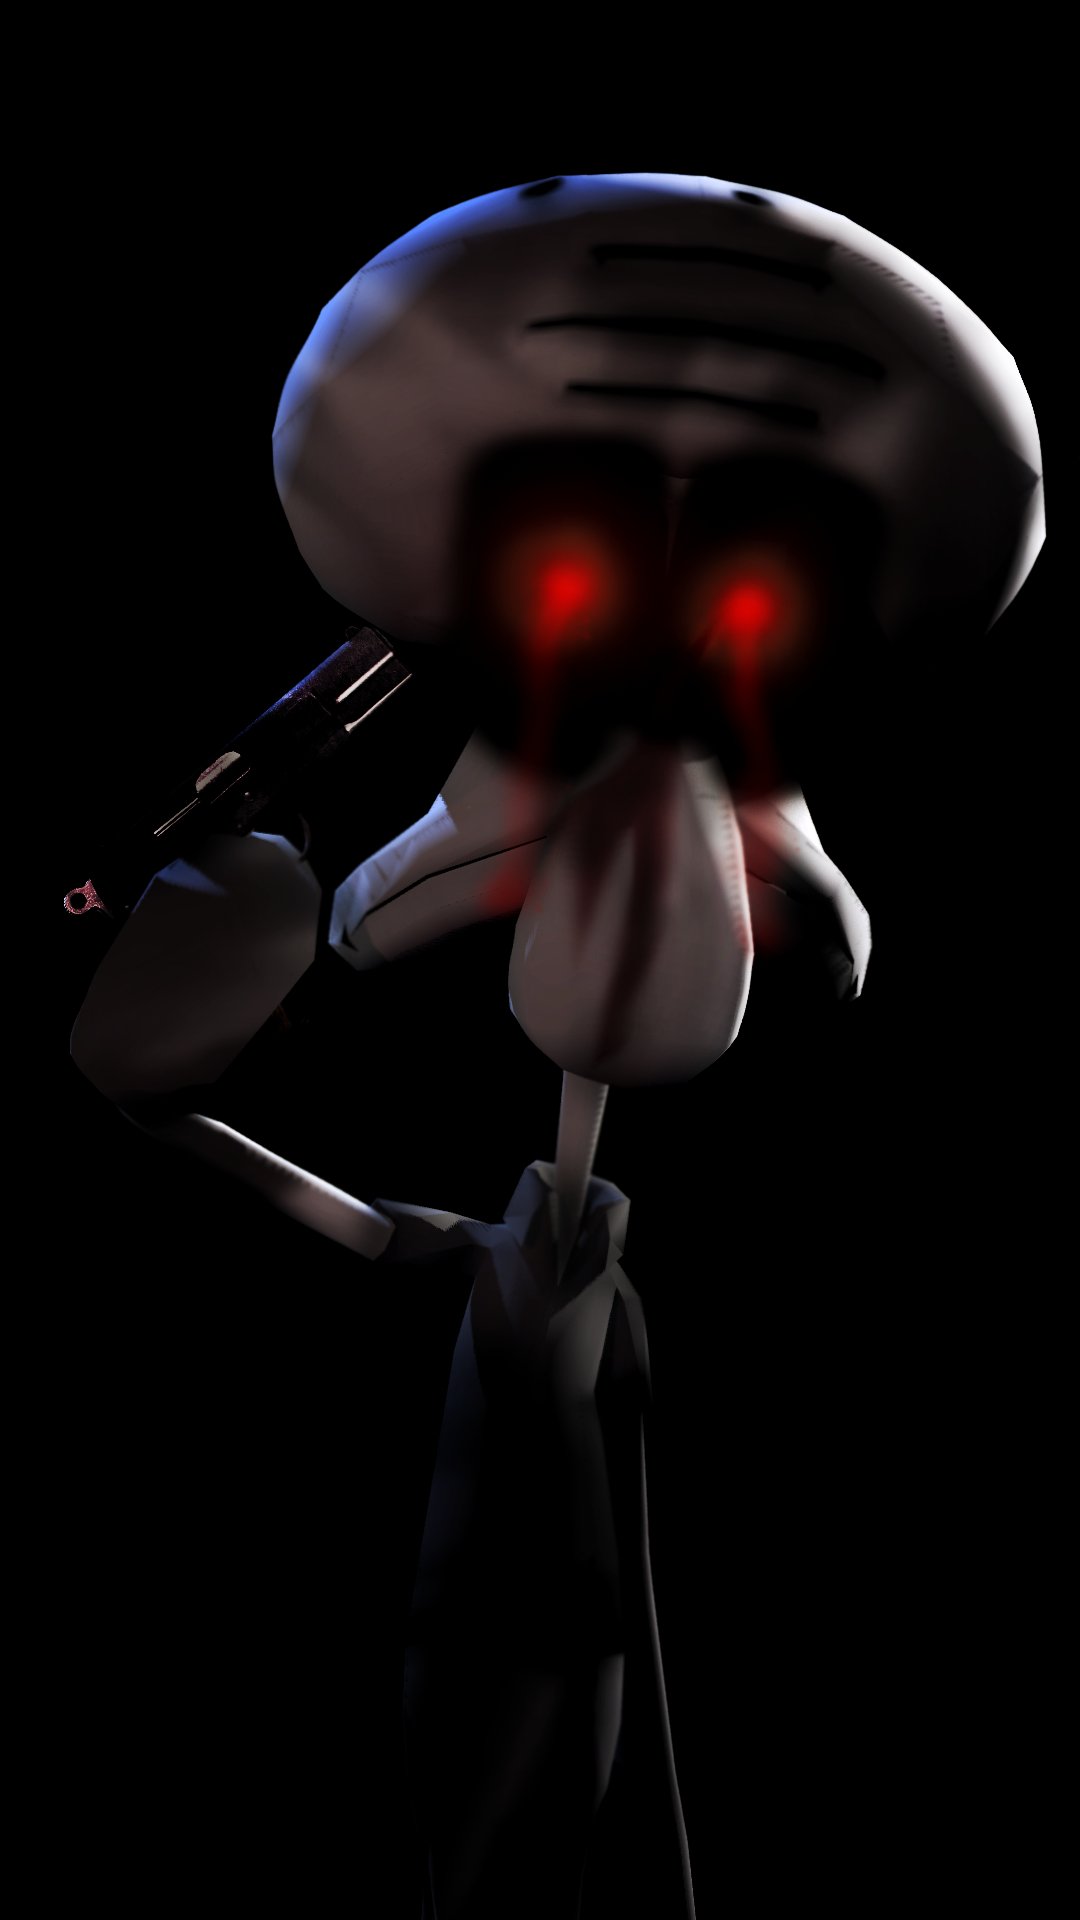 Suicide Squidward by WitchyGmod on DeviantArt